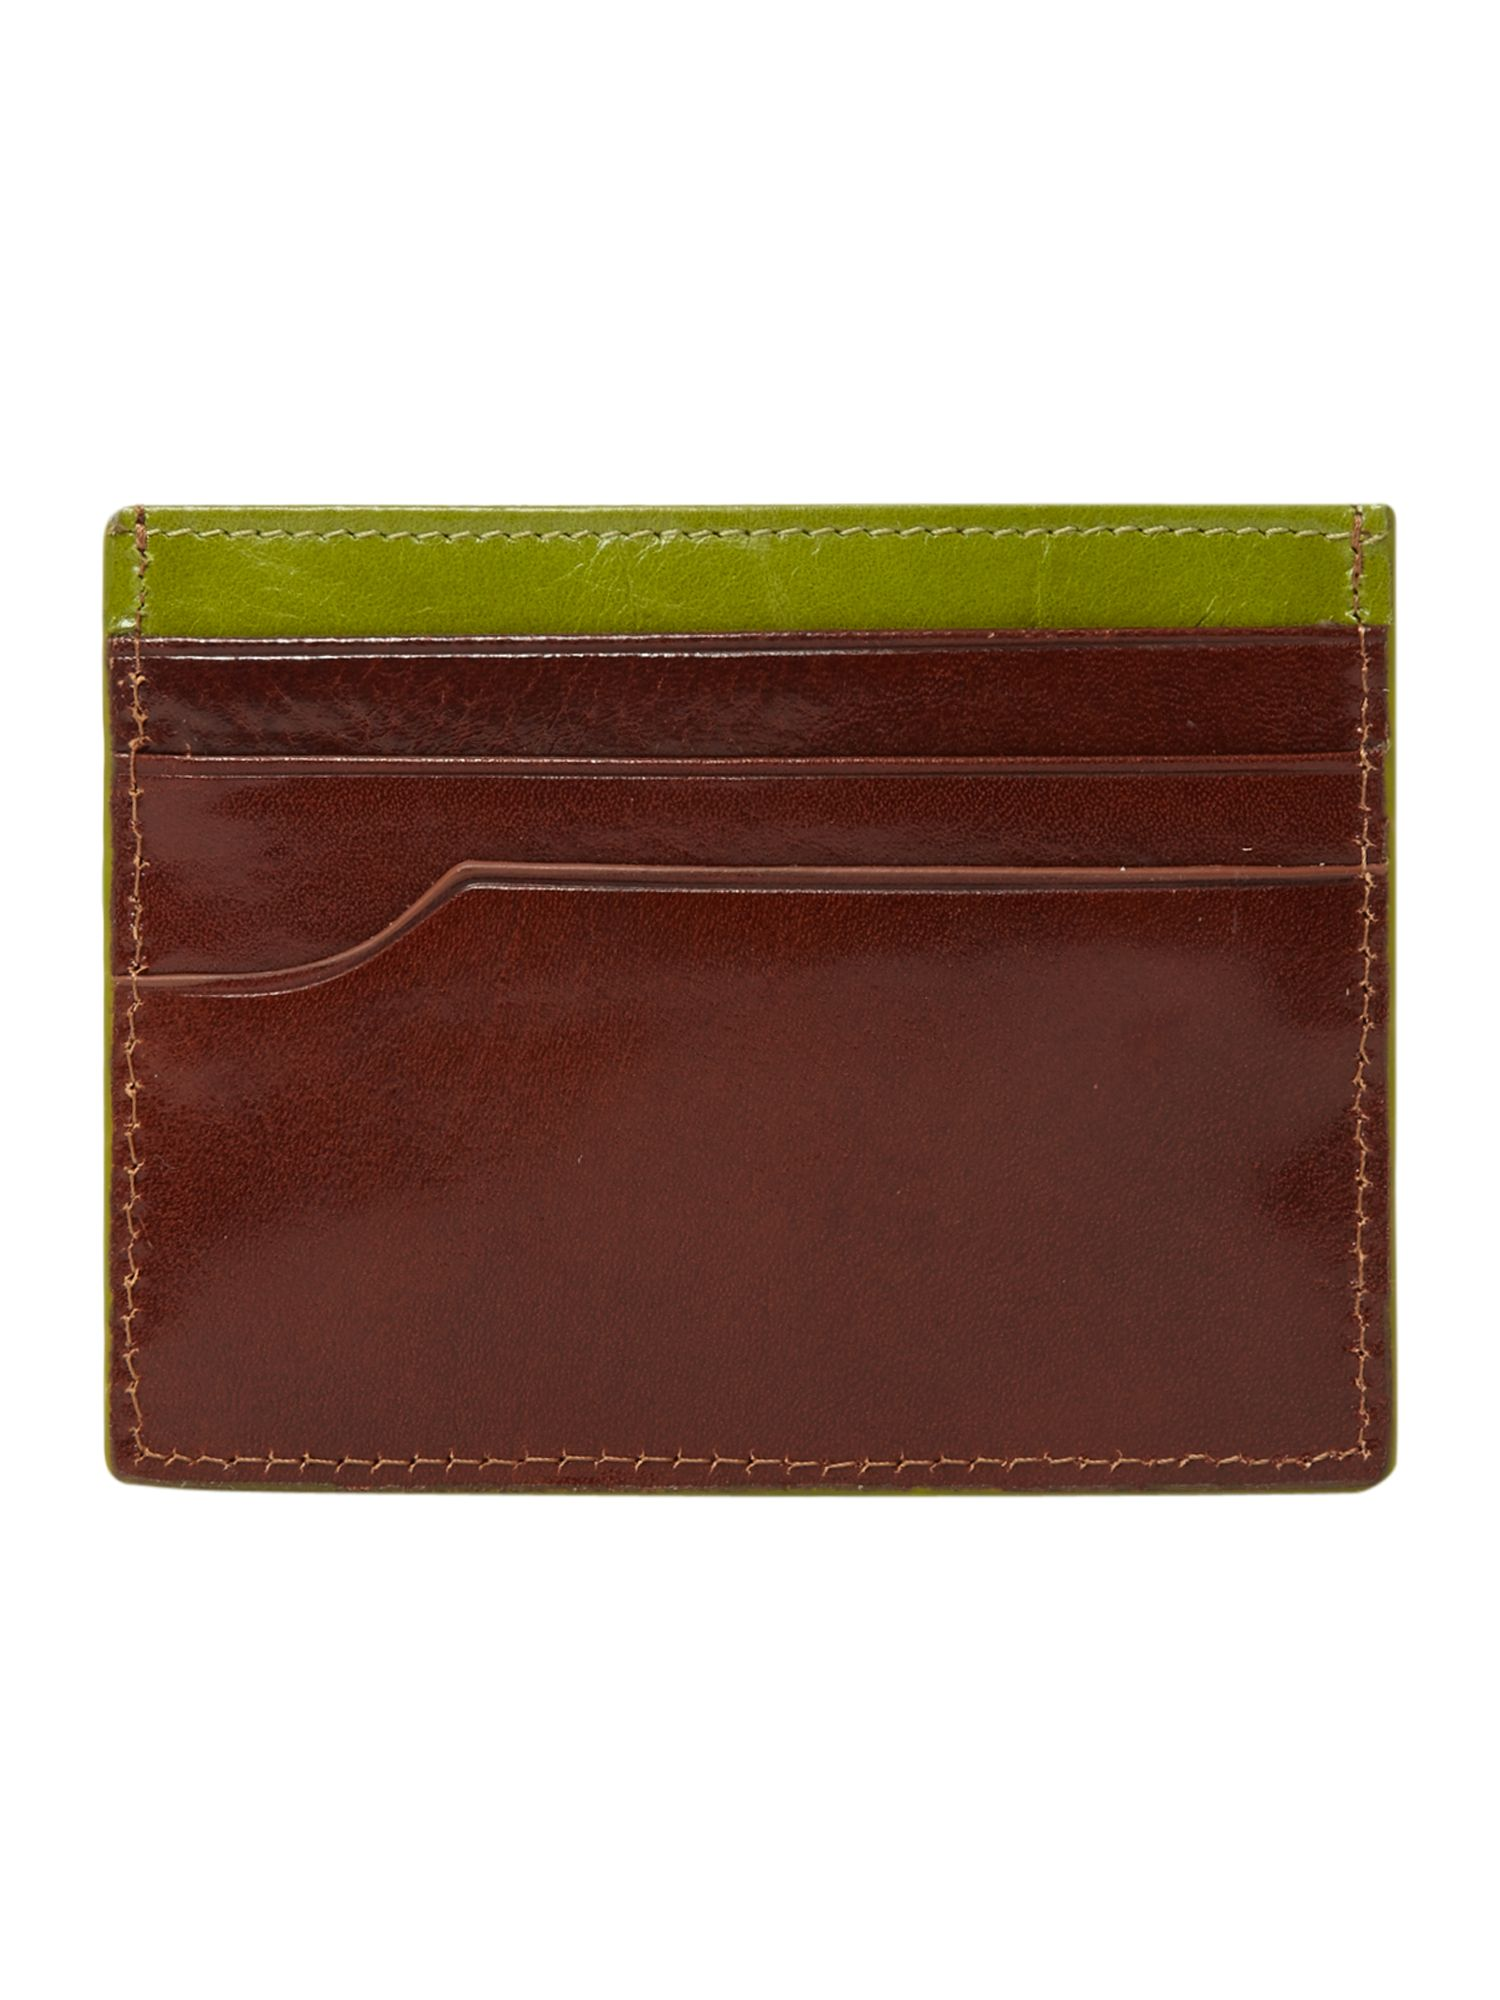 Edge paint card holder wallet